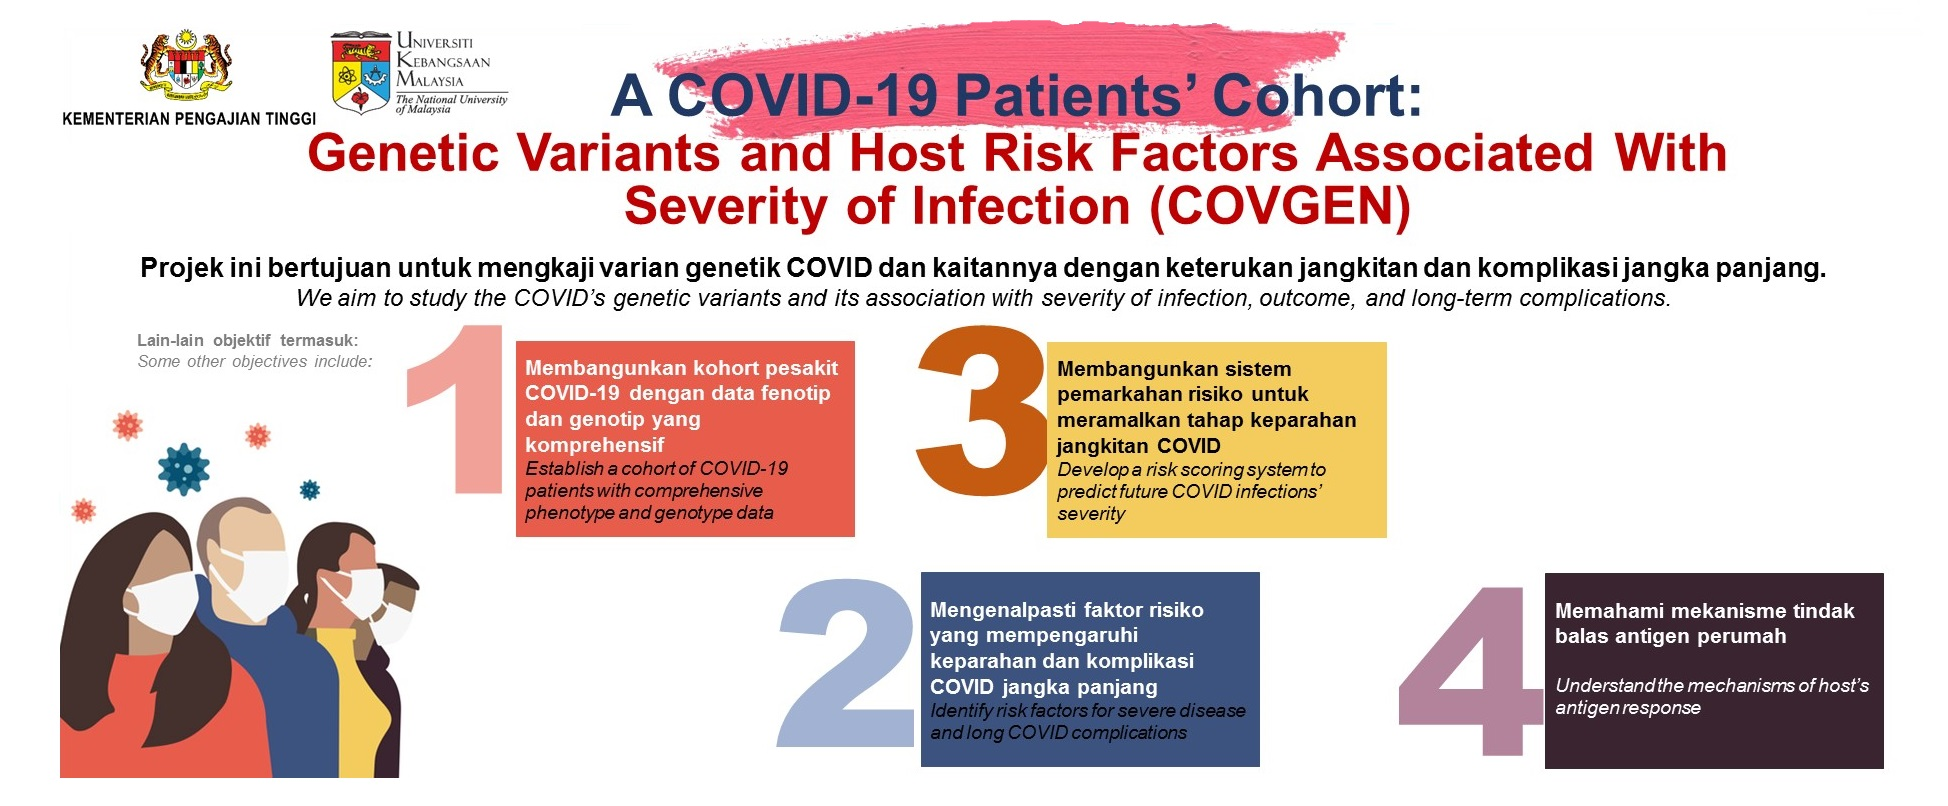 Genetic Variants and Host Risk Factors Associated With Severity of Infection (COVGEN)